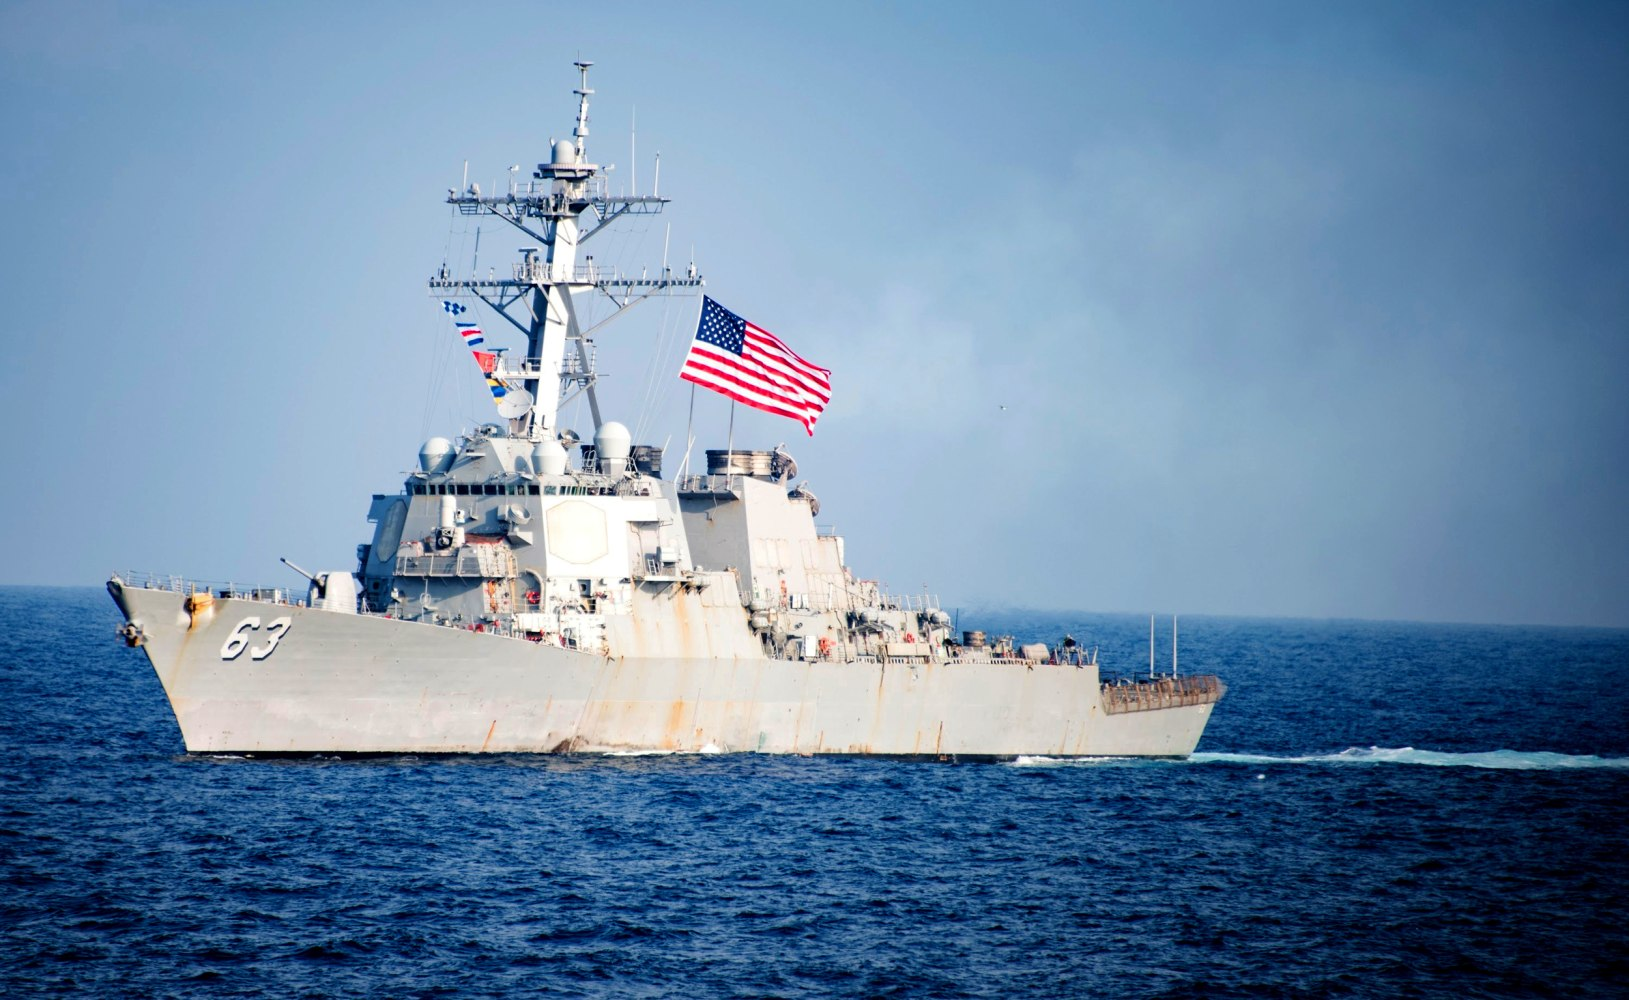 United States  warship sails close to South China Sea island occupied by Beijing